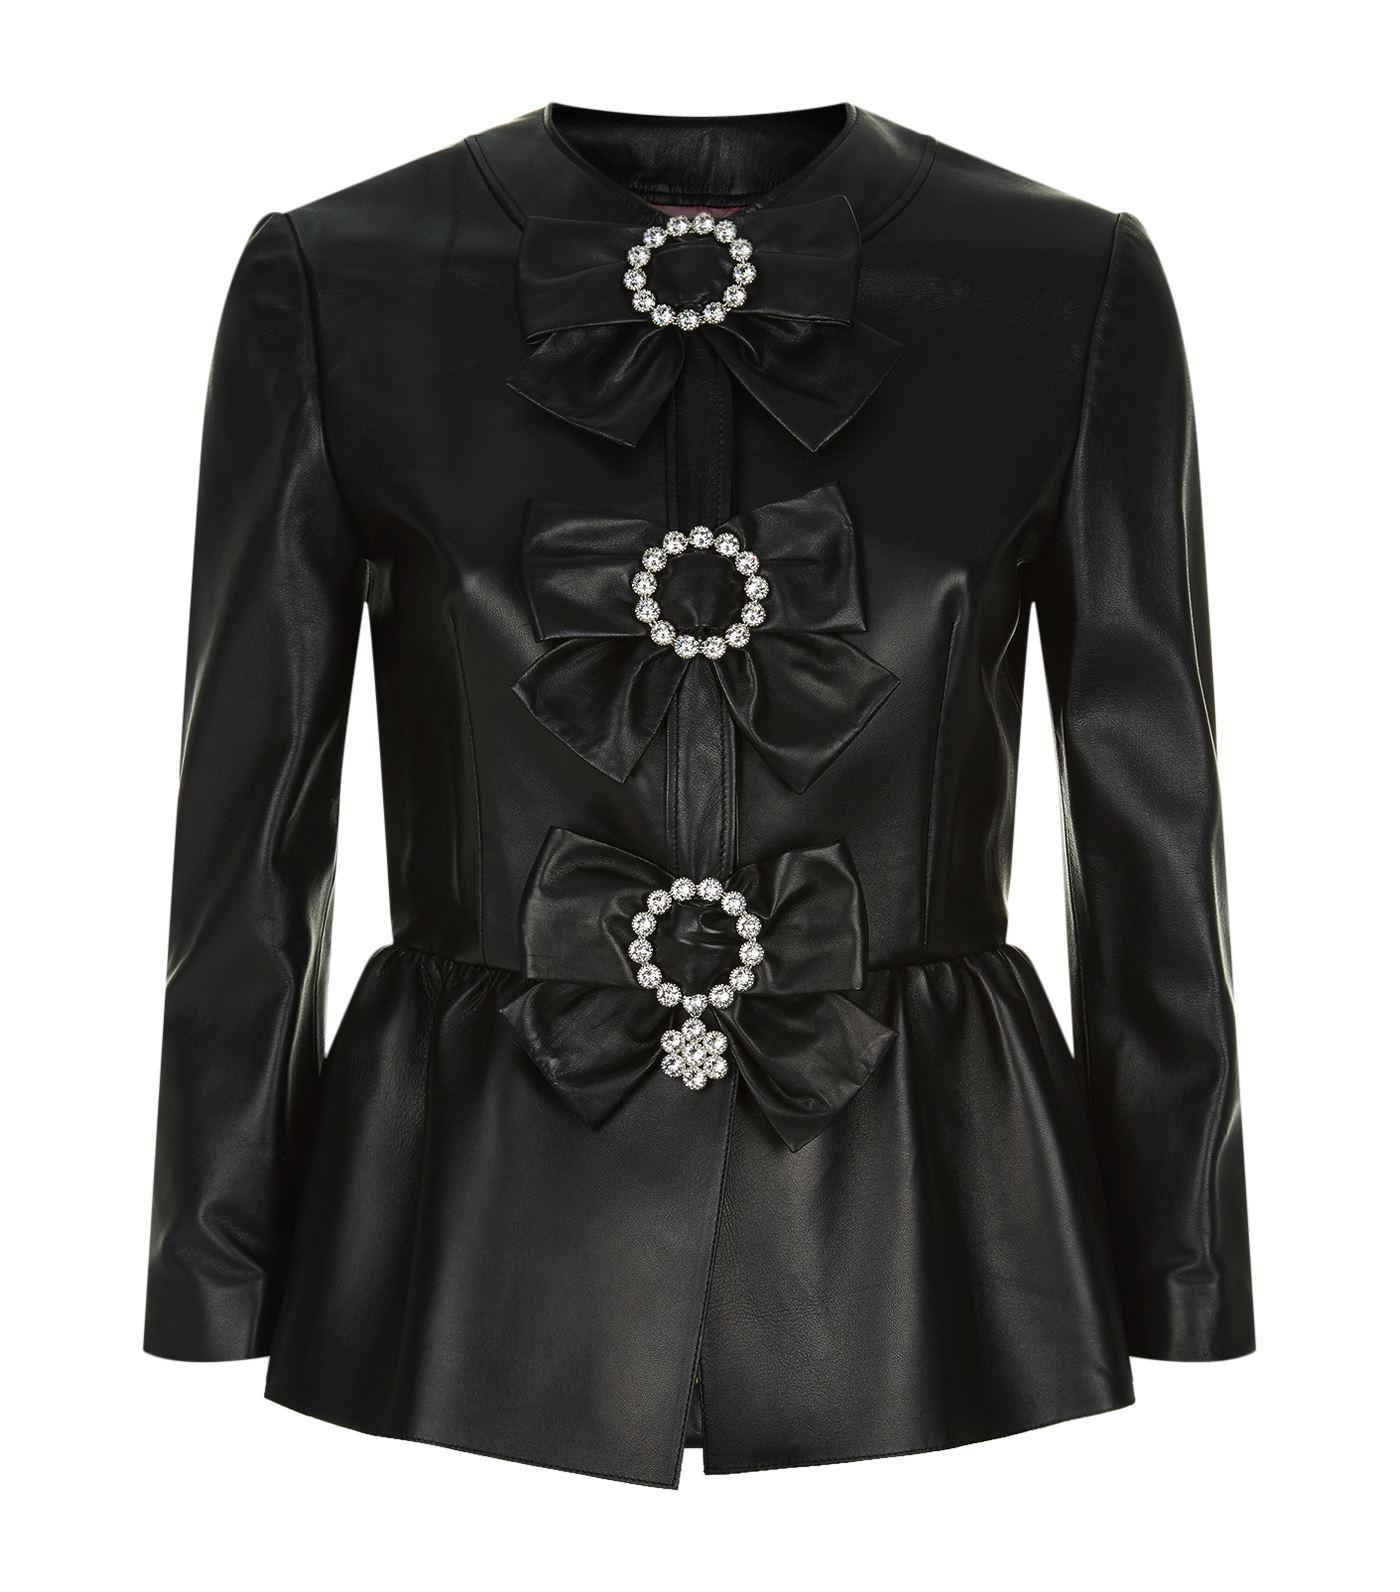 Gucci PlongÈ Leather Peplum Jacket In Black